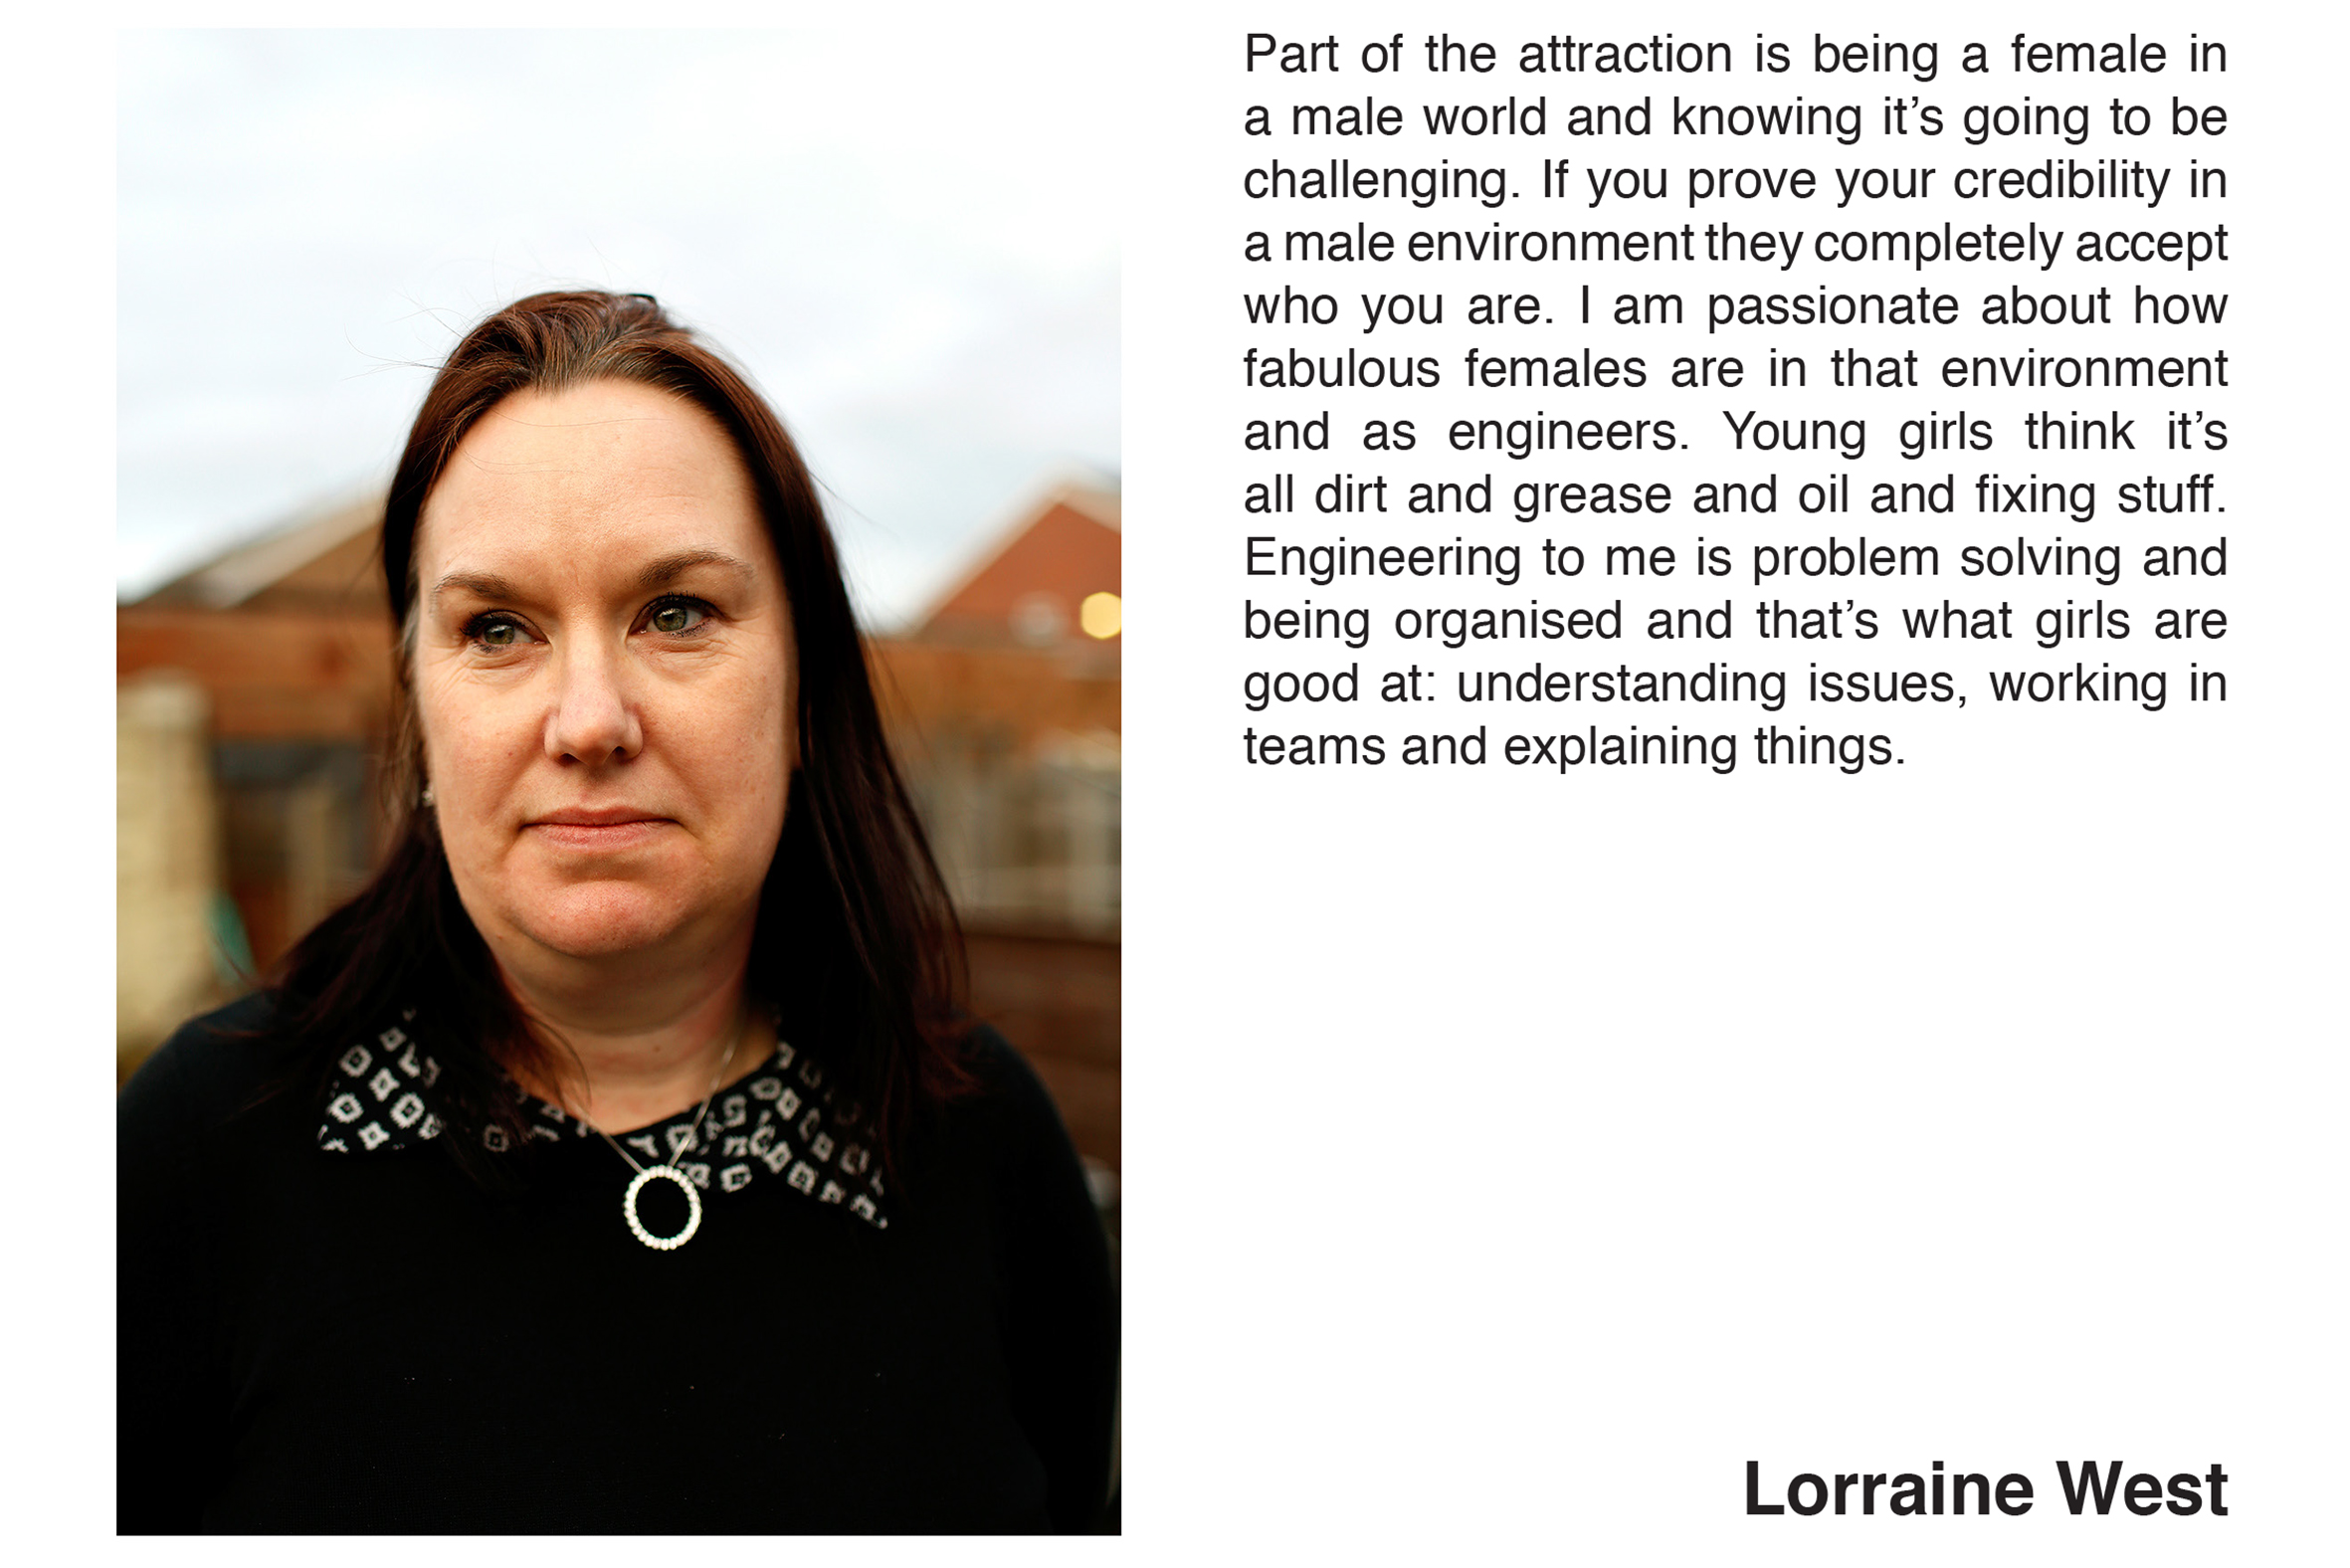 Lorraine West from the series 'Women of Longbridge' by Hannah Hull & Stephen Burke